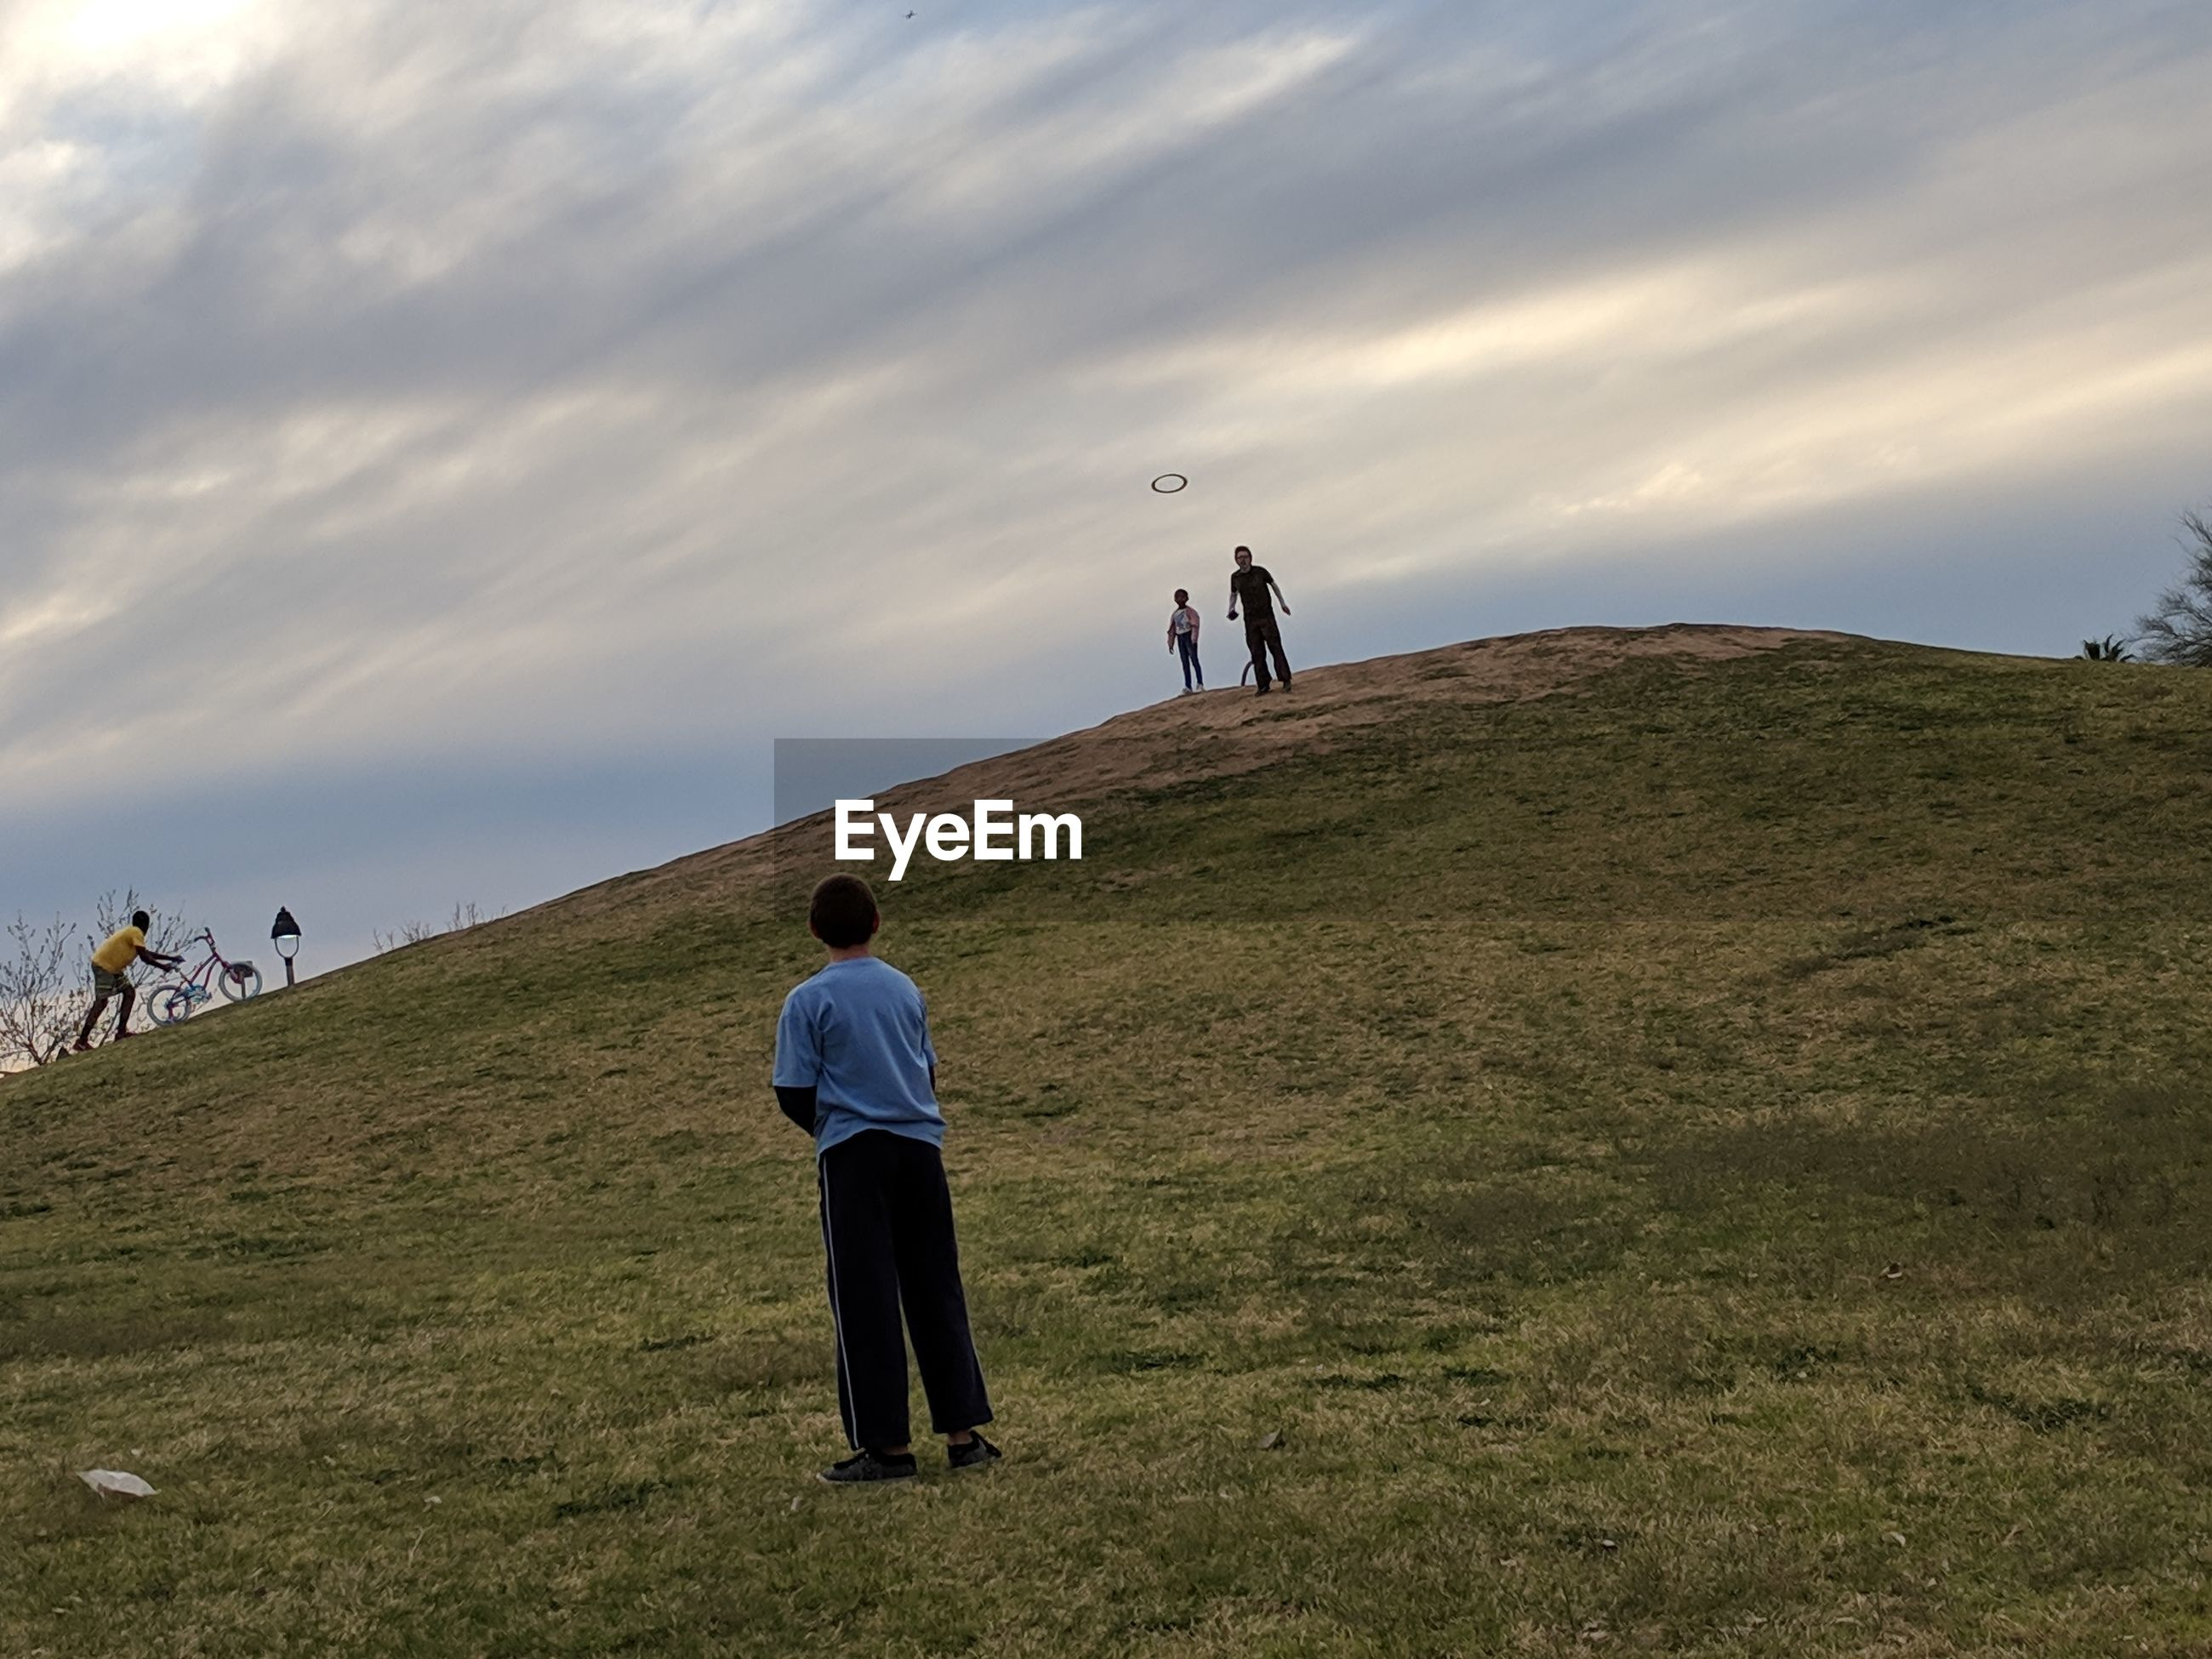 Friends playing on hill against cloudy sky